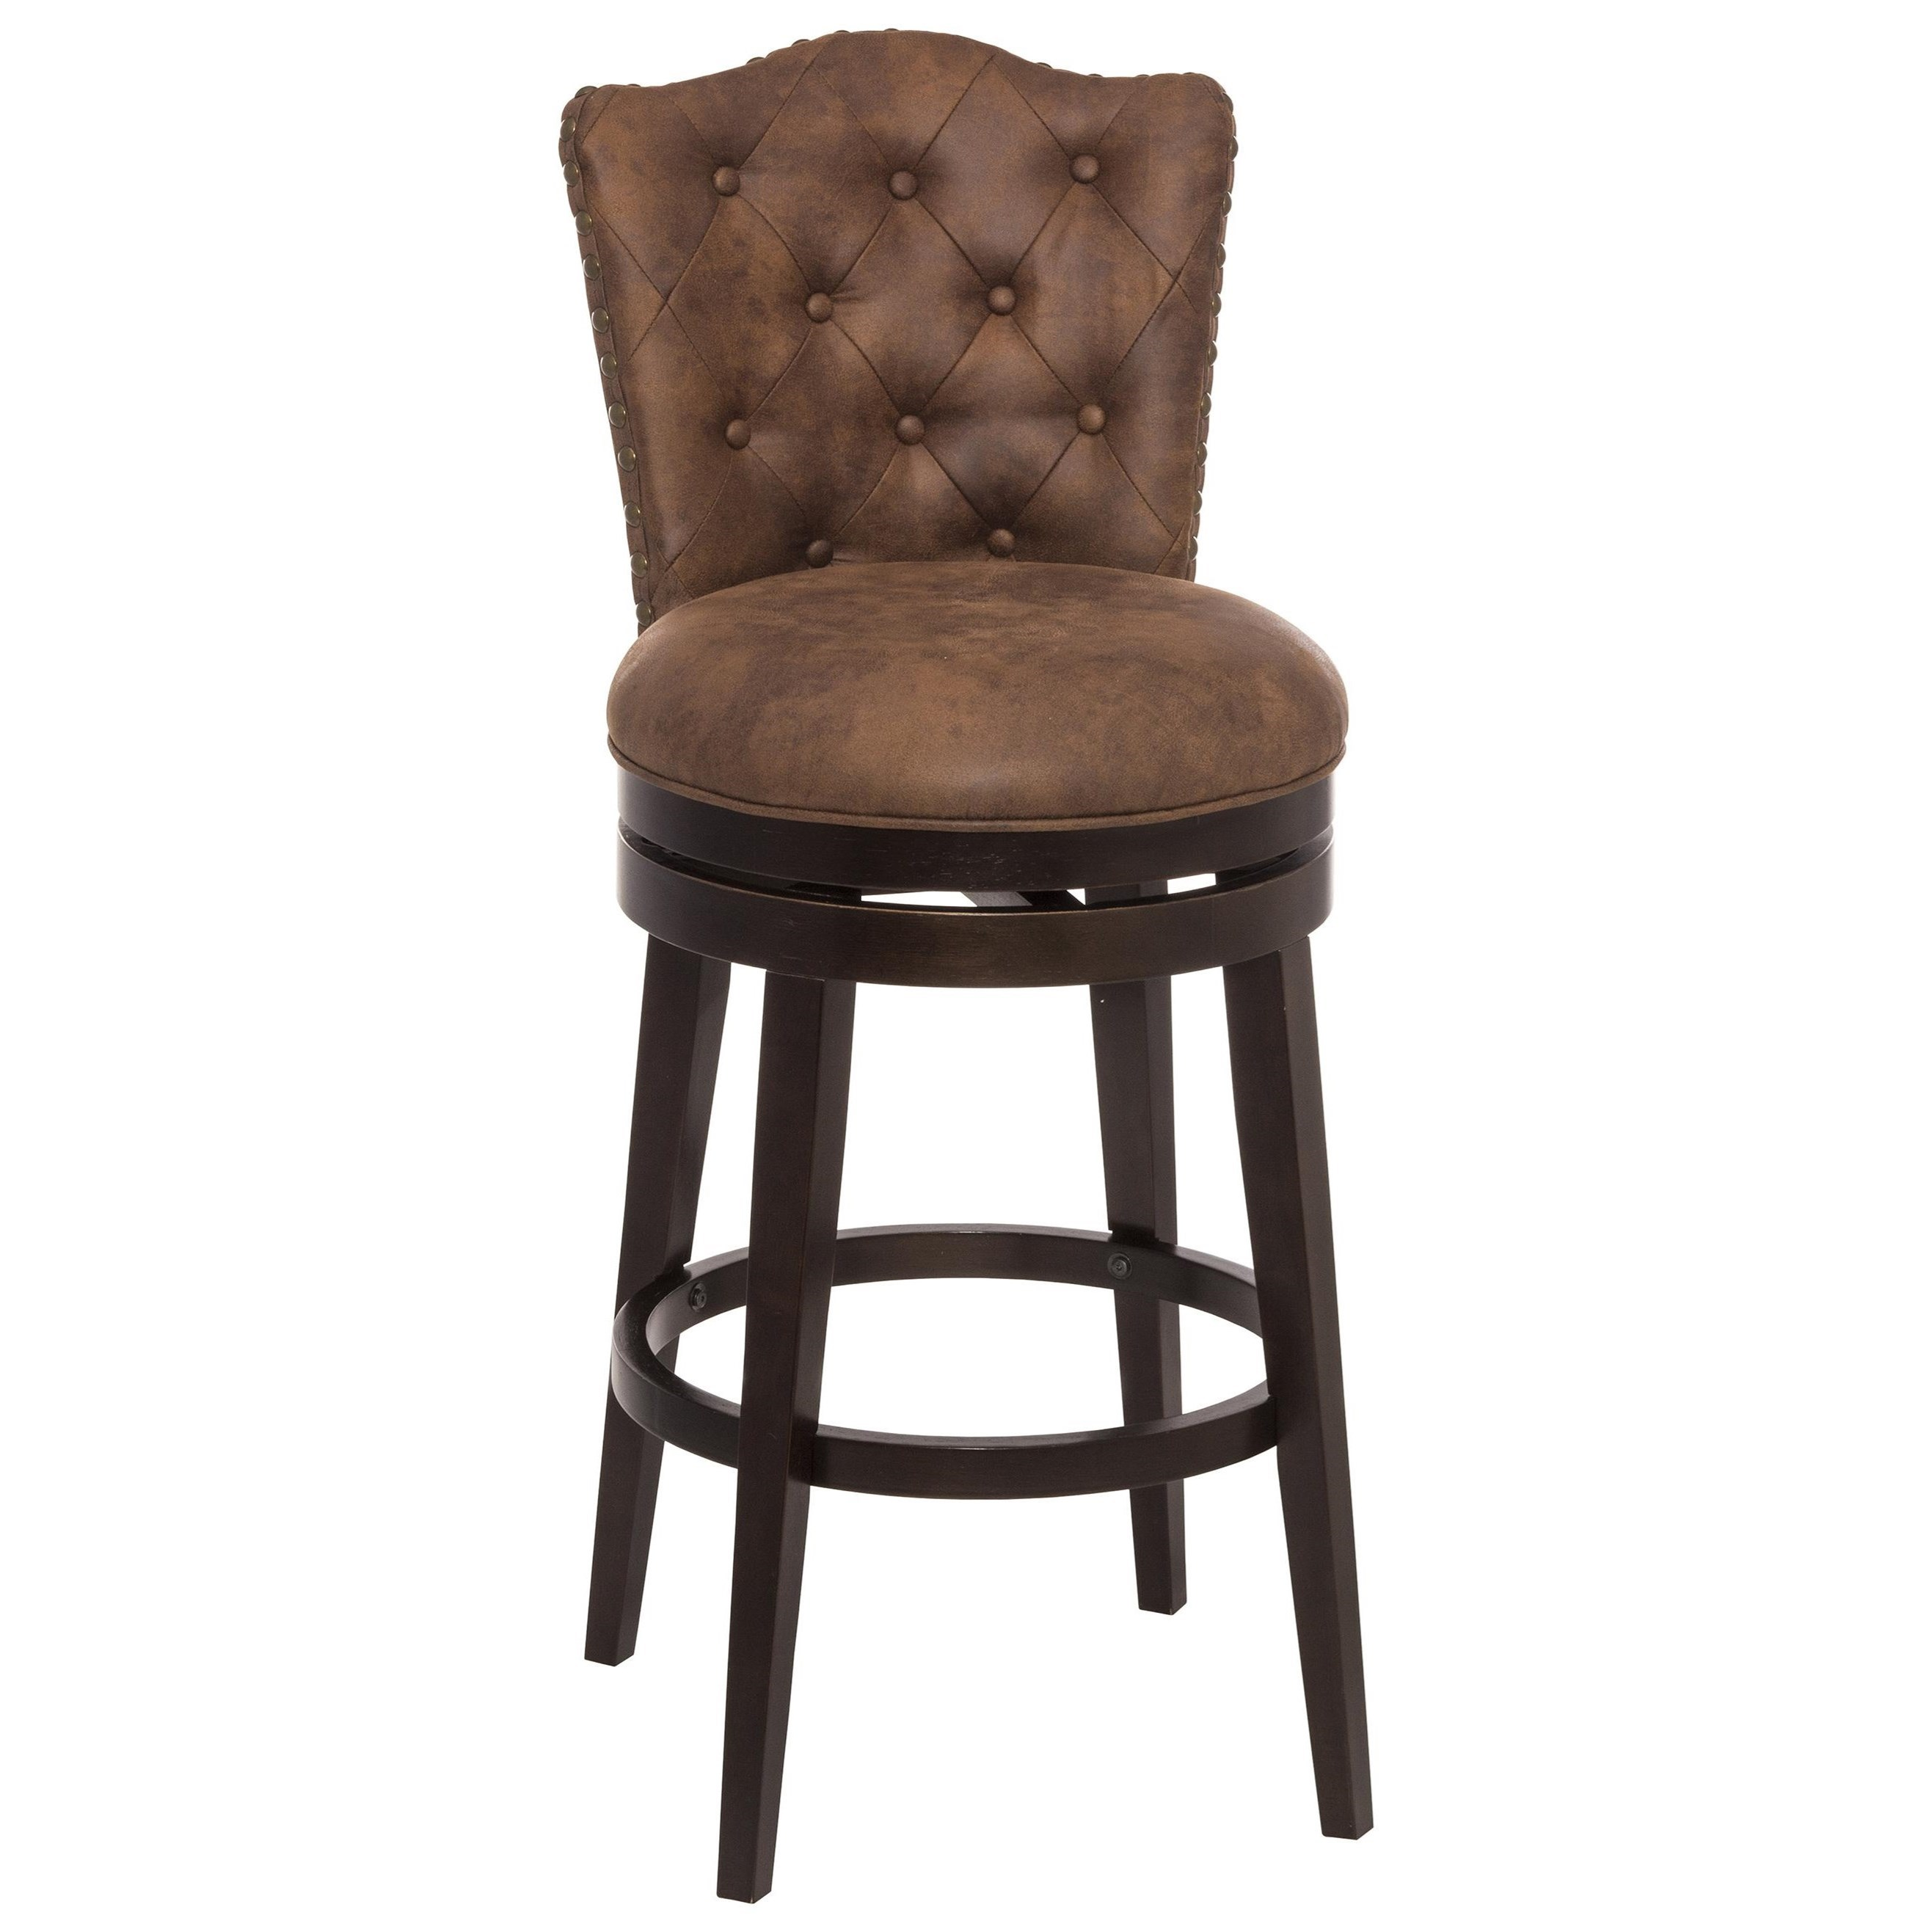 Hillsdale Wood Stools 5945 826 Swivel Counter Stool With